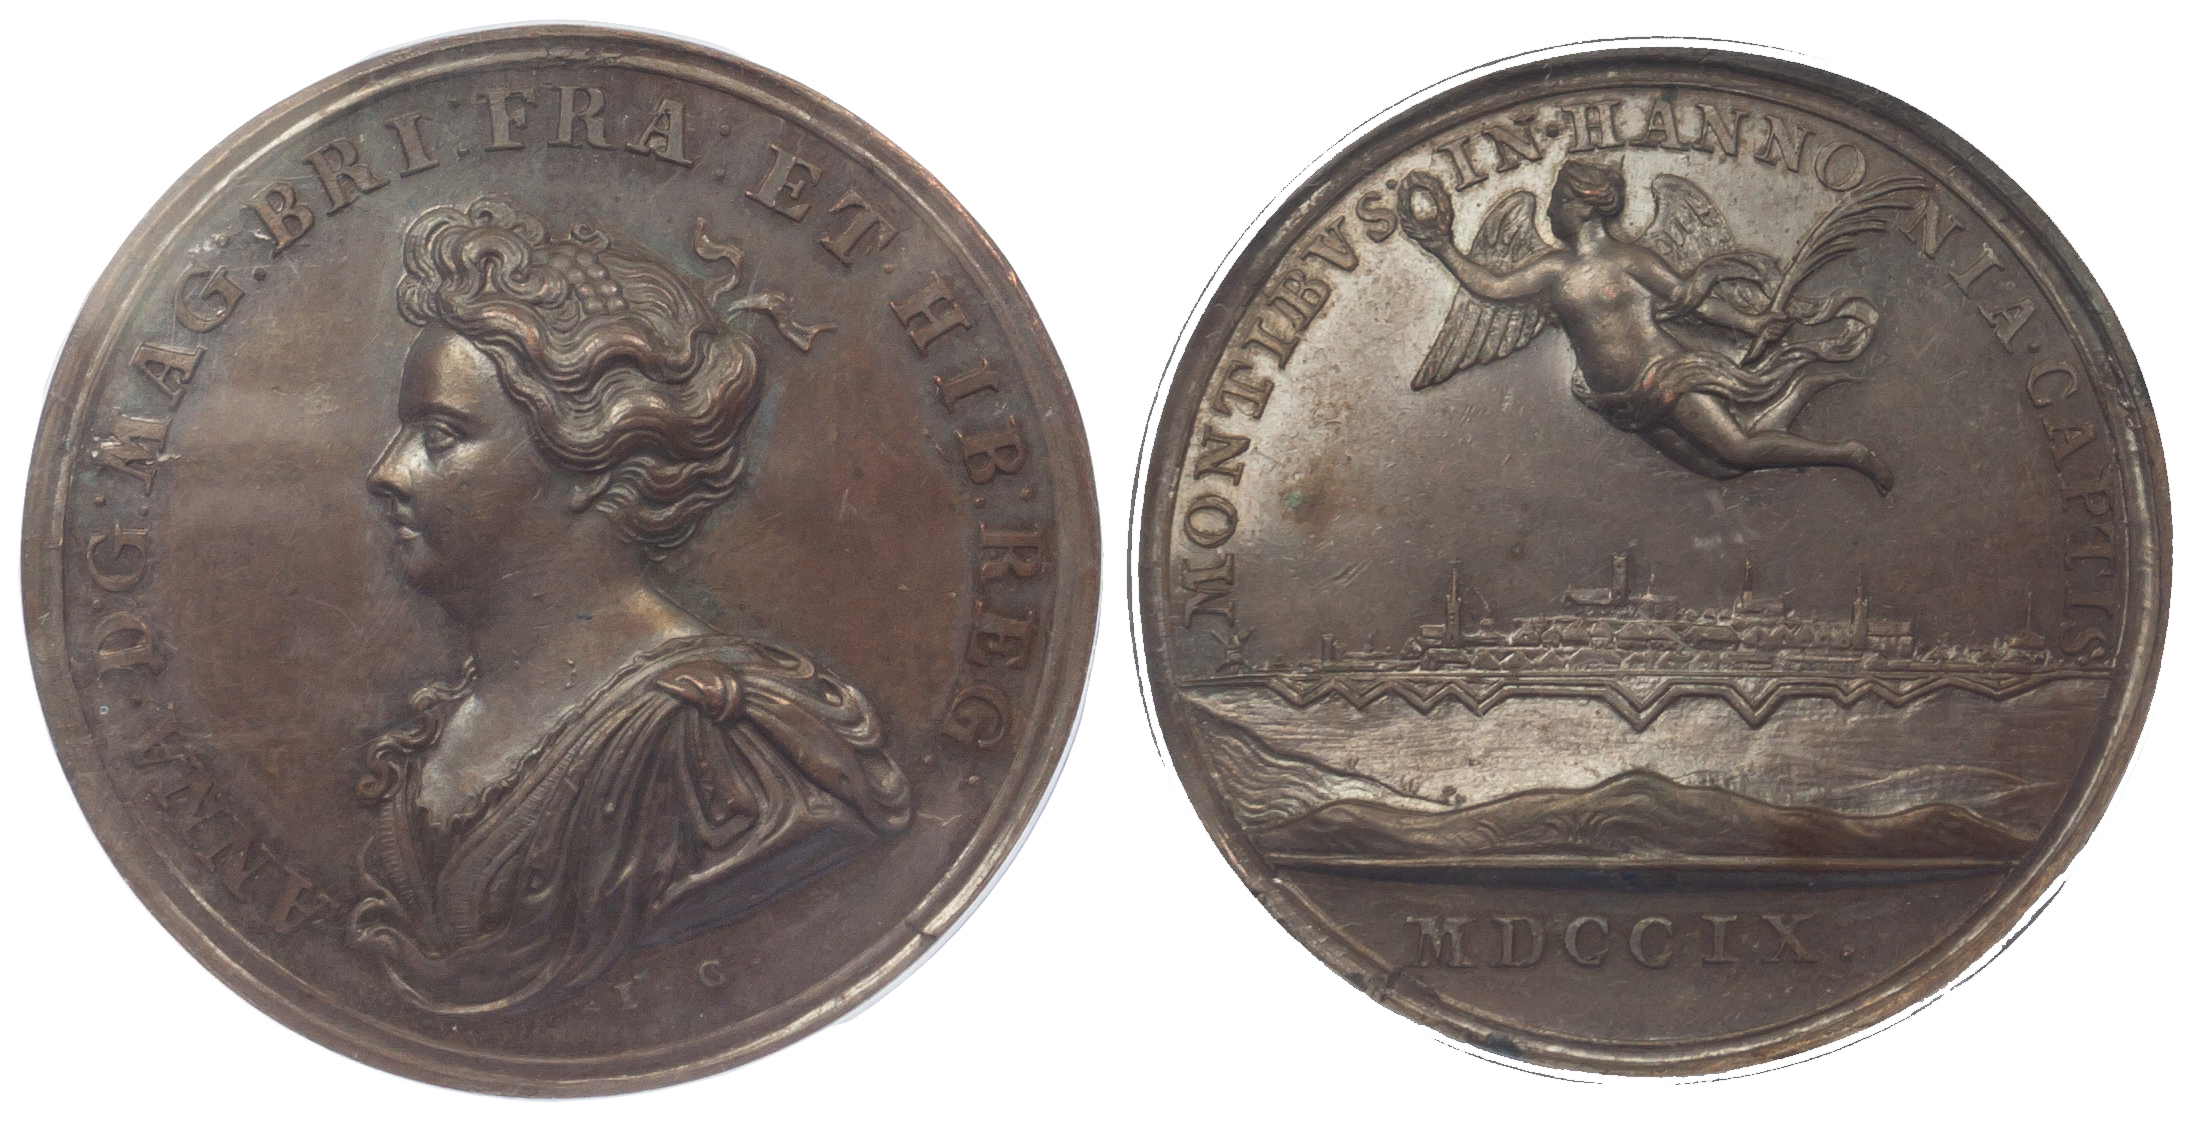 Anne, Capture of Mons, Medal 1709